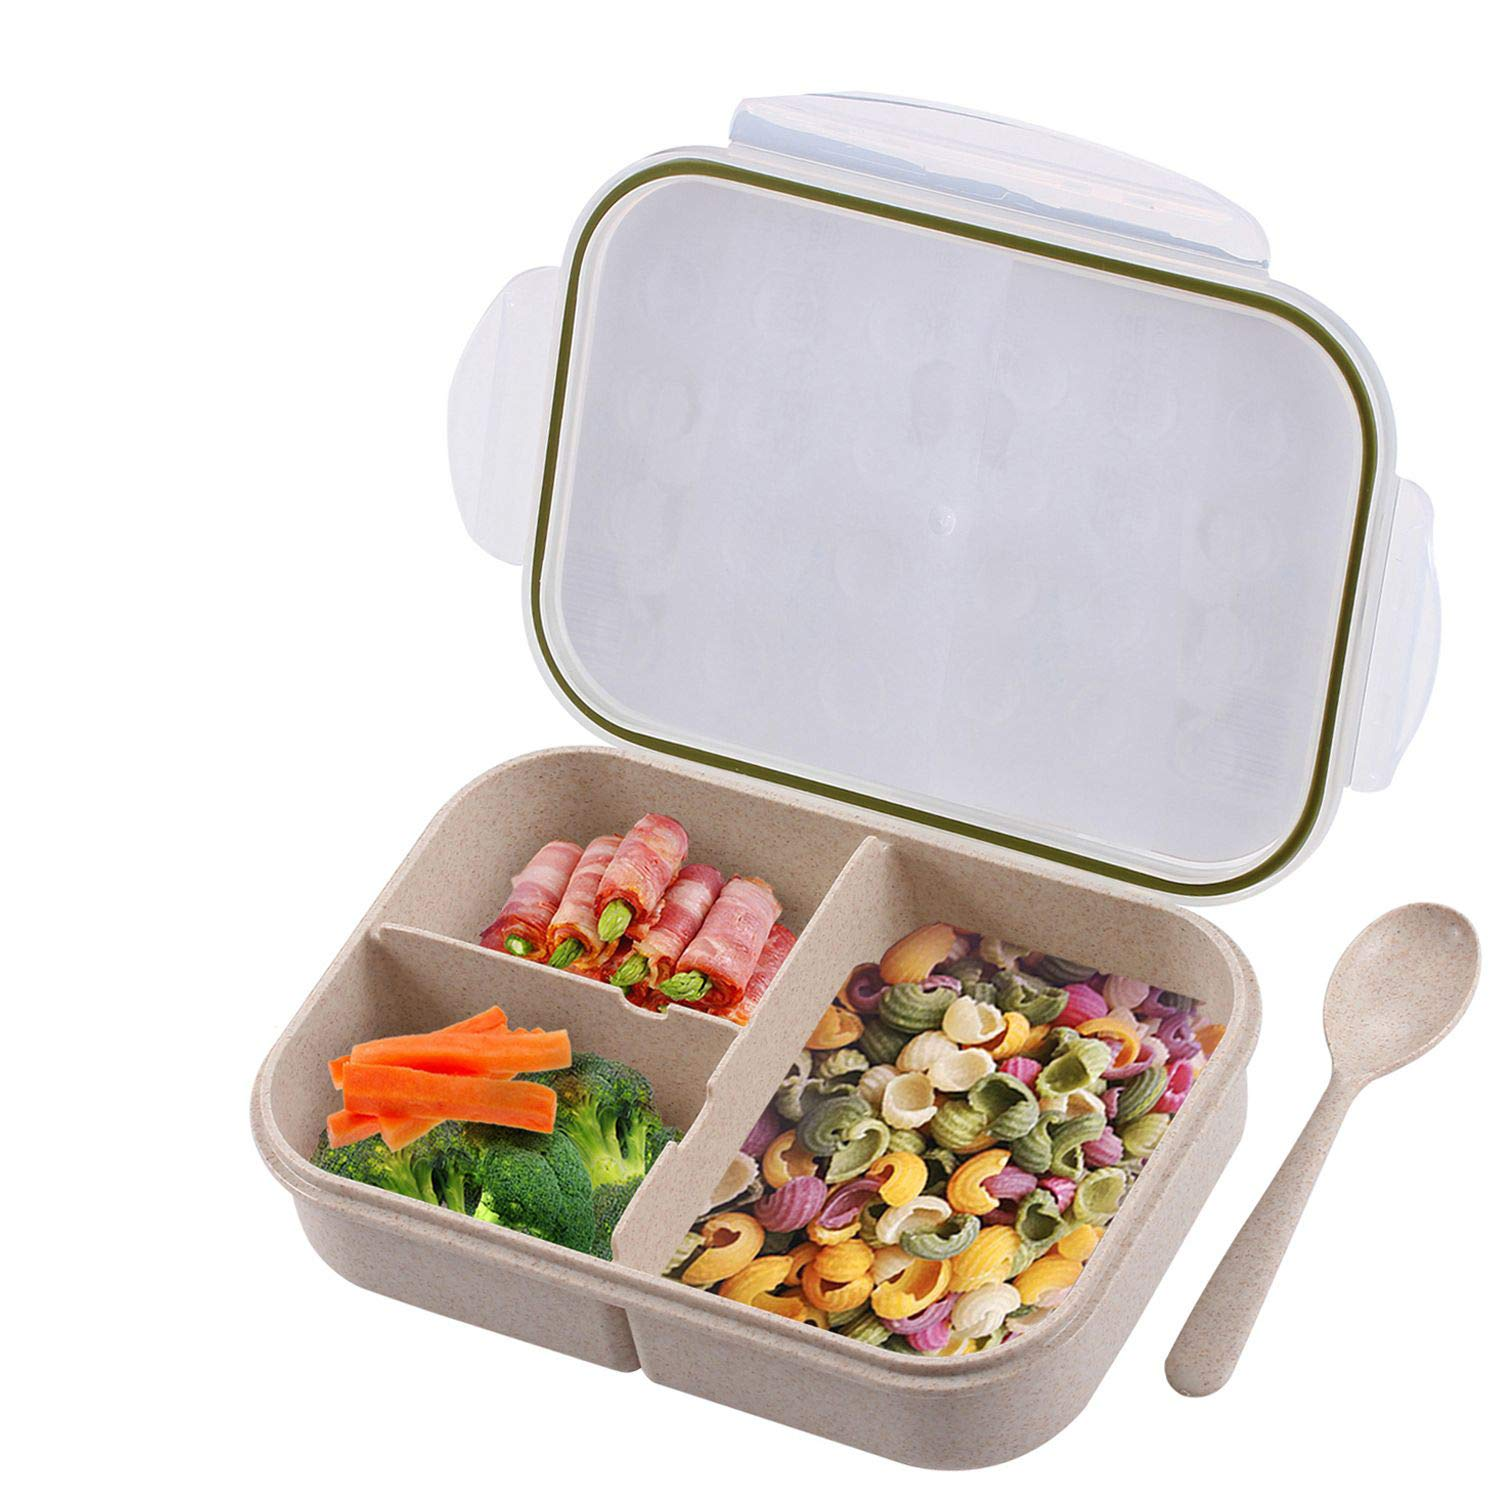 Bento Box for Kids, Leakproof With 3 Compartments, FDA Approved and BPA-Free Bento Lunch containers For Kids By BusyMouth (white)